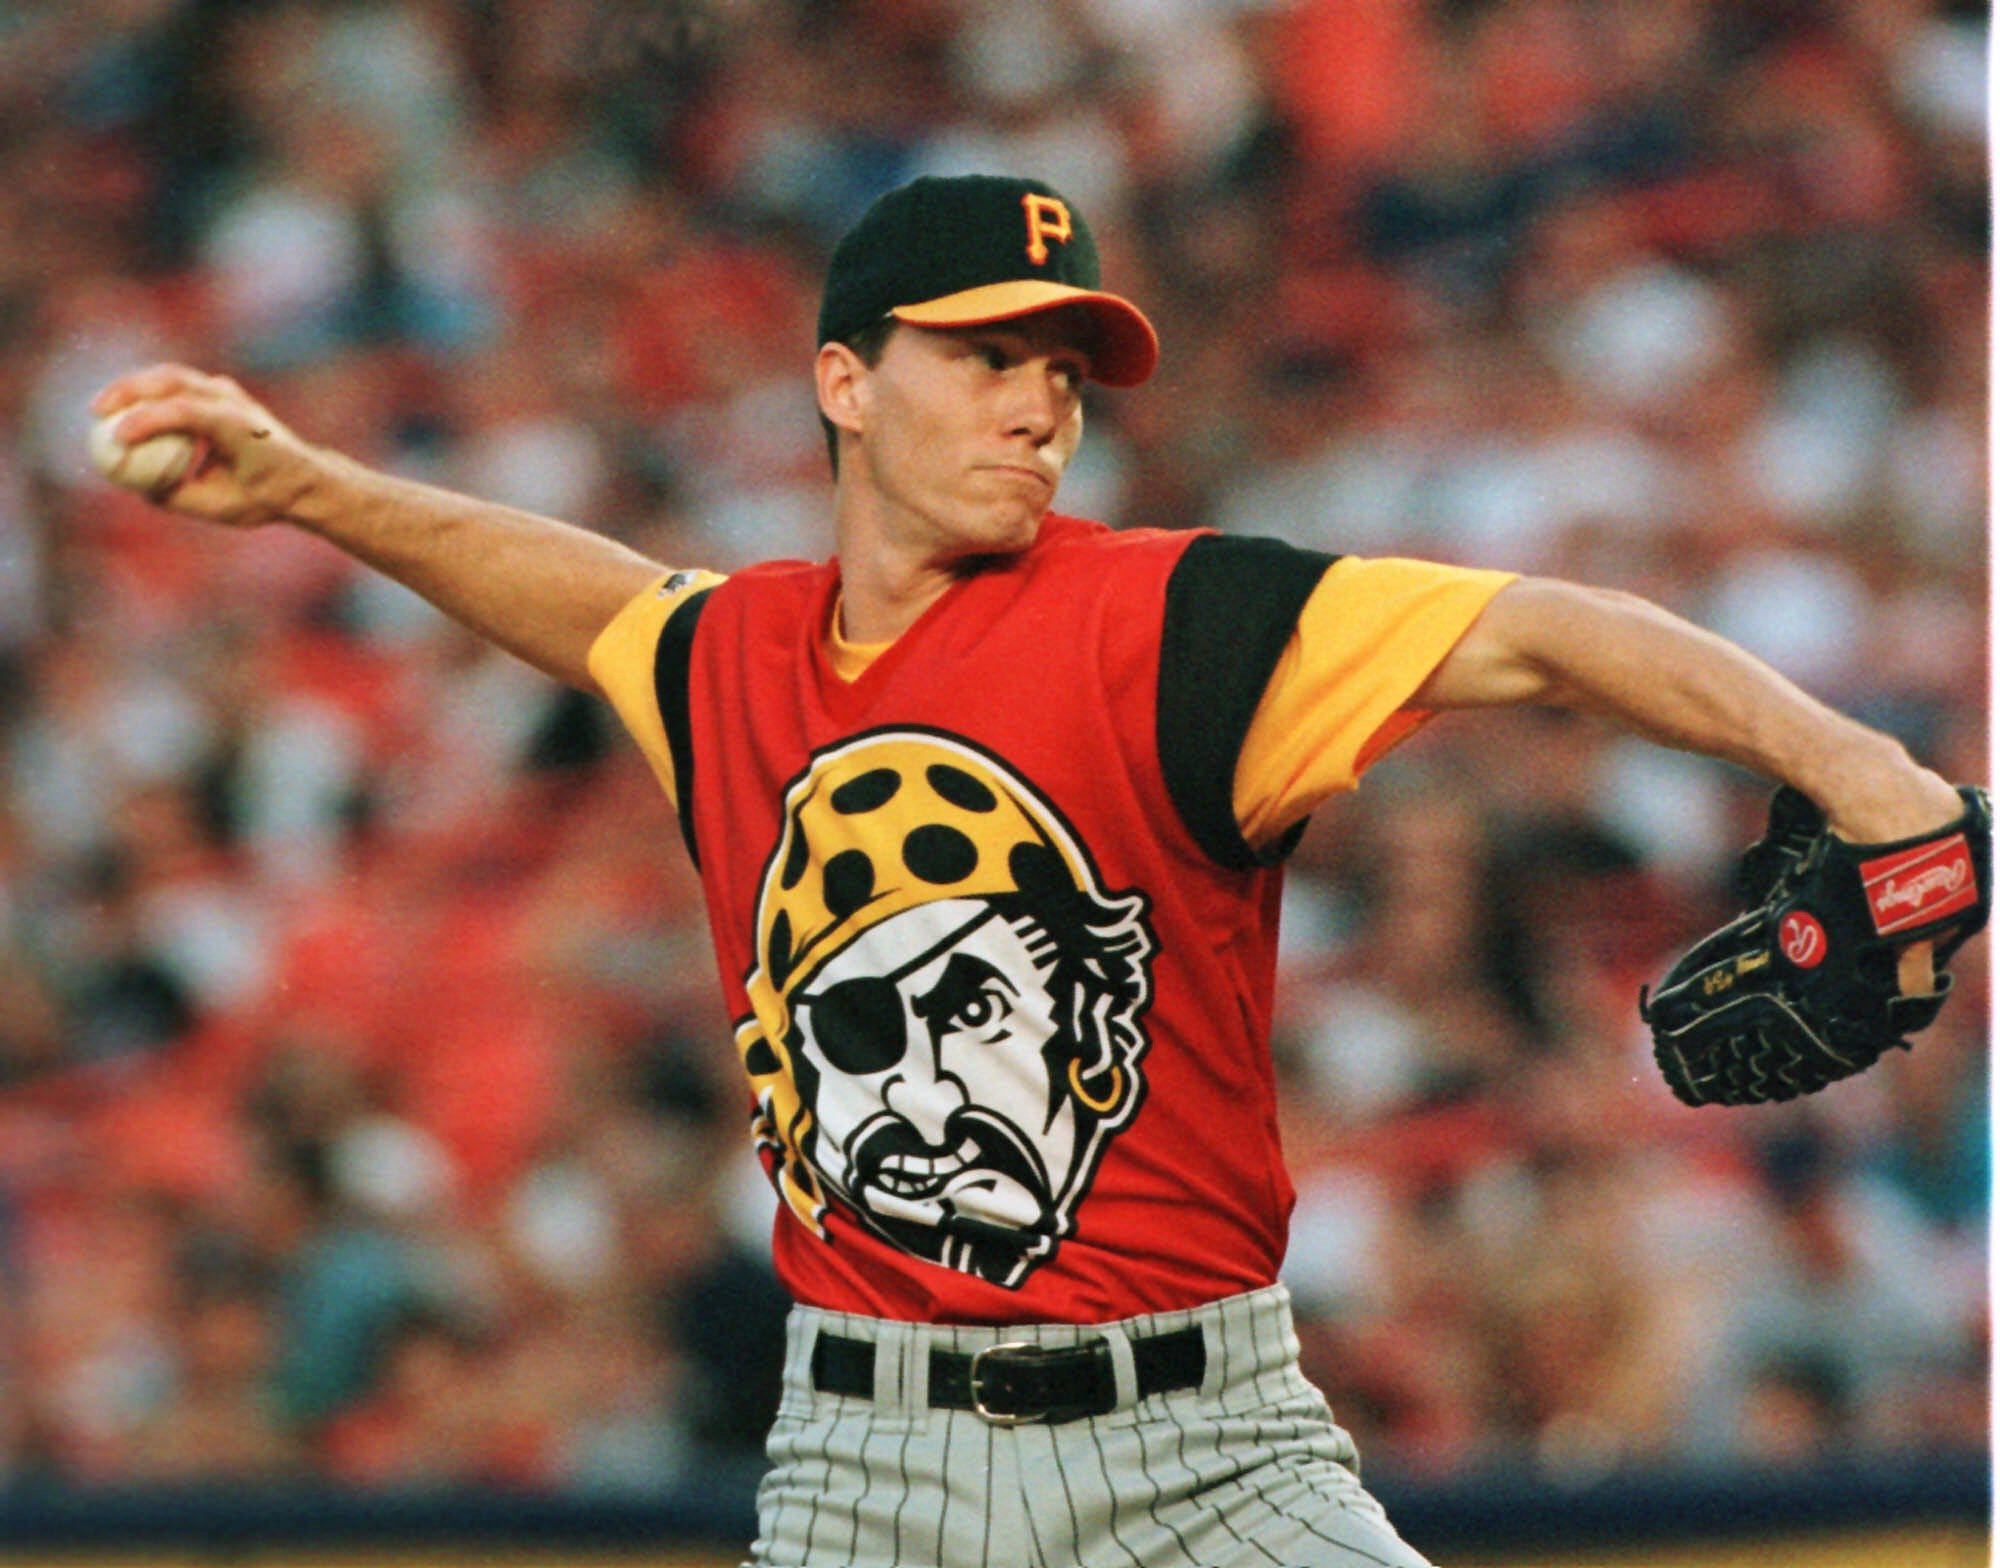 You're wearing that? Images of the ugliest MLB uniforms in history